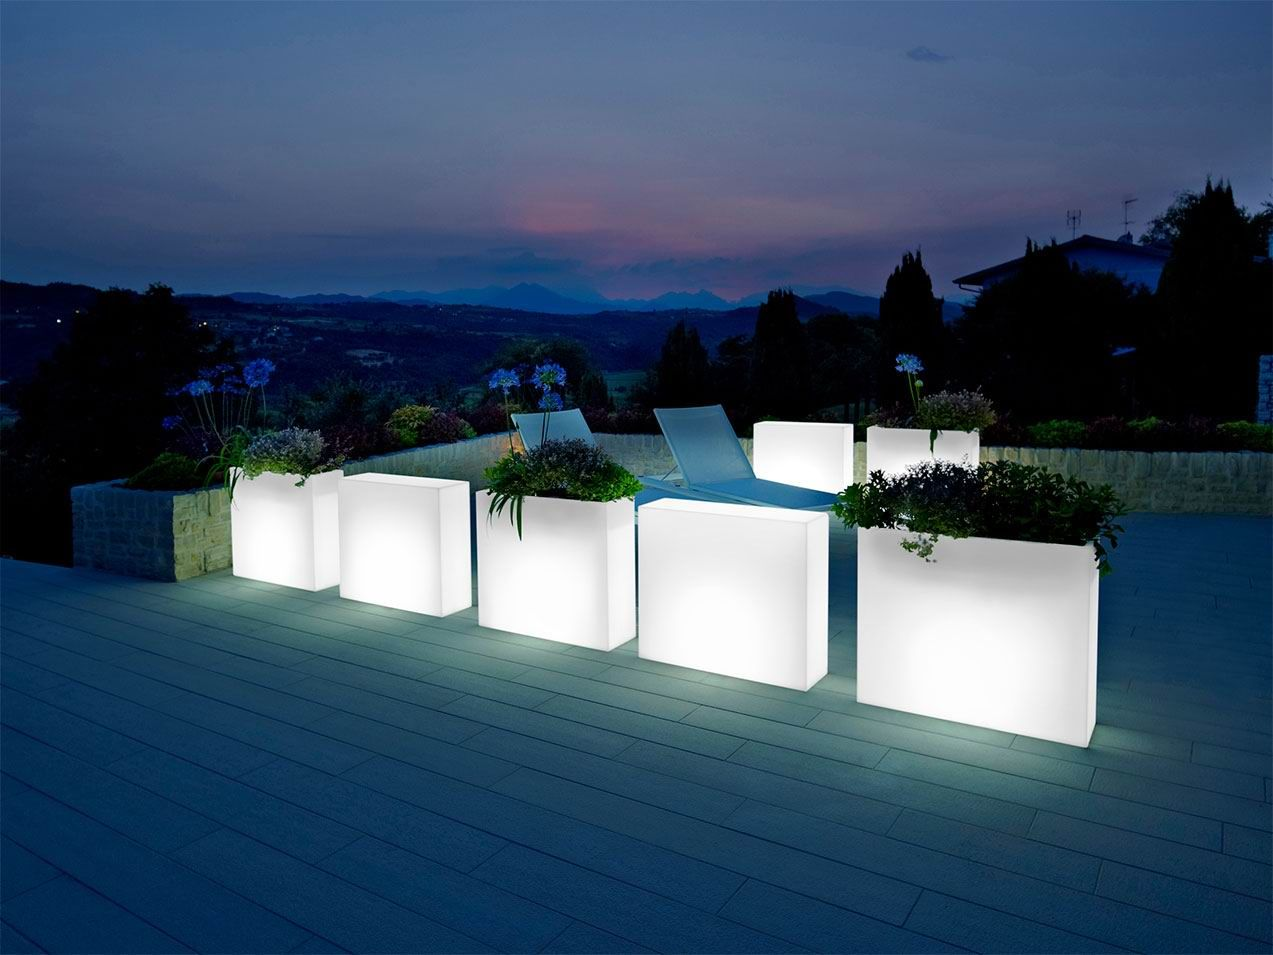 furniture home suppliers store suppliers & Pin by KONCEPTUS Design on Khilia light pots   Pinterest   Outdoor ...